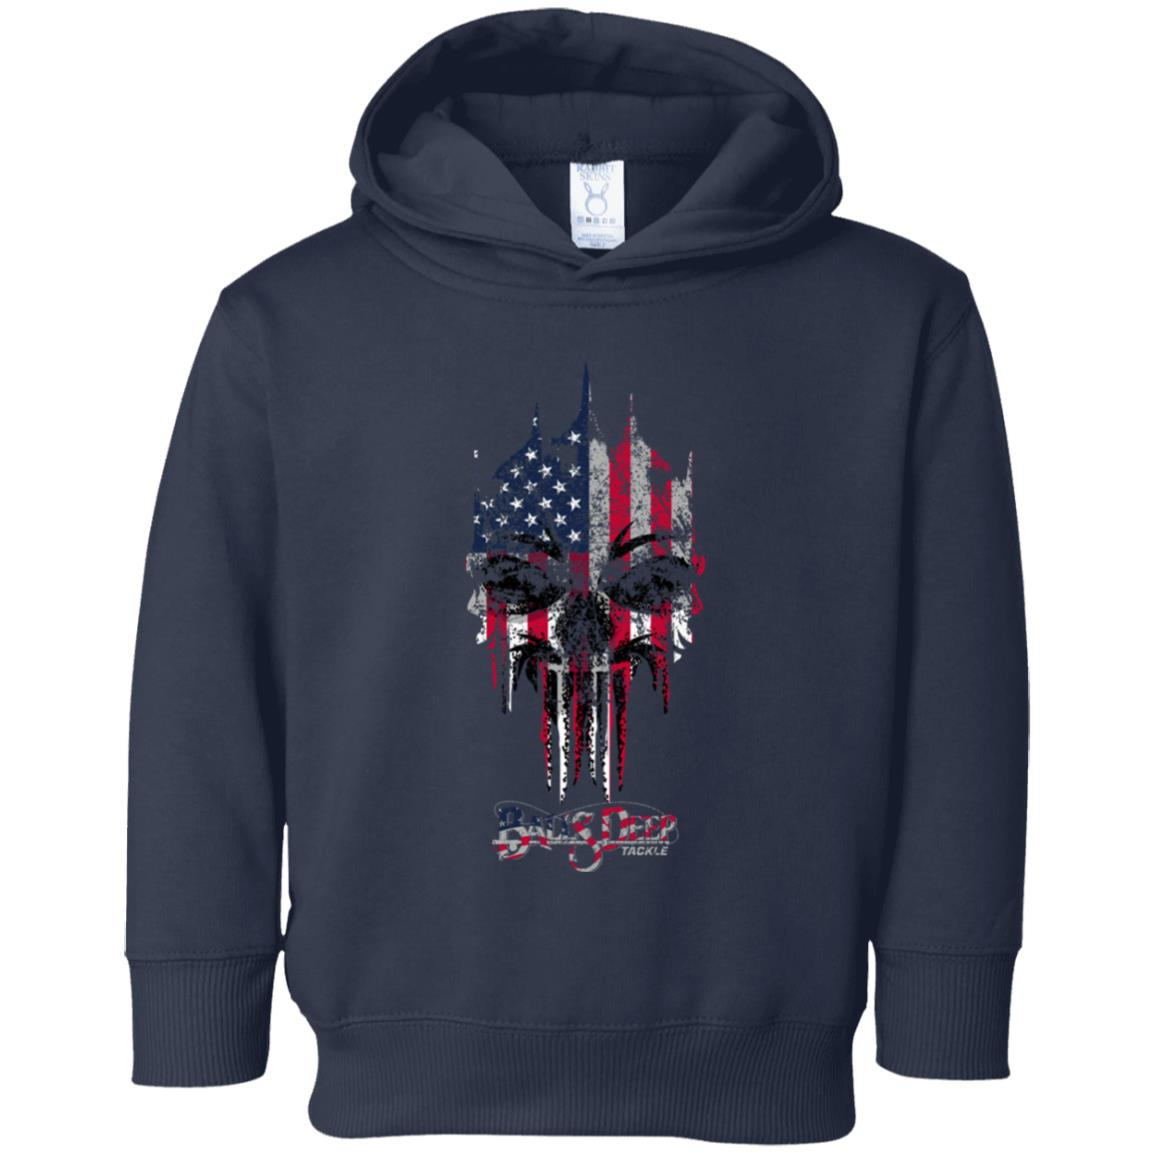 America the Punisher Toddler Hoodie